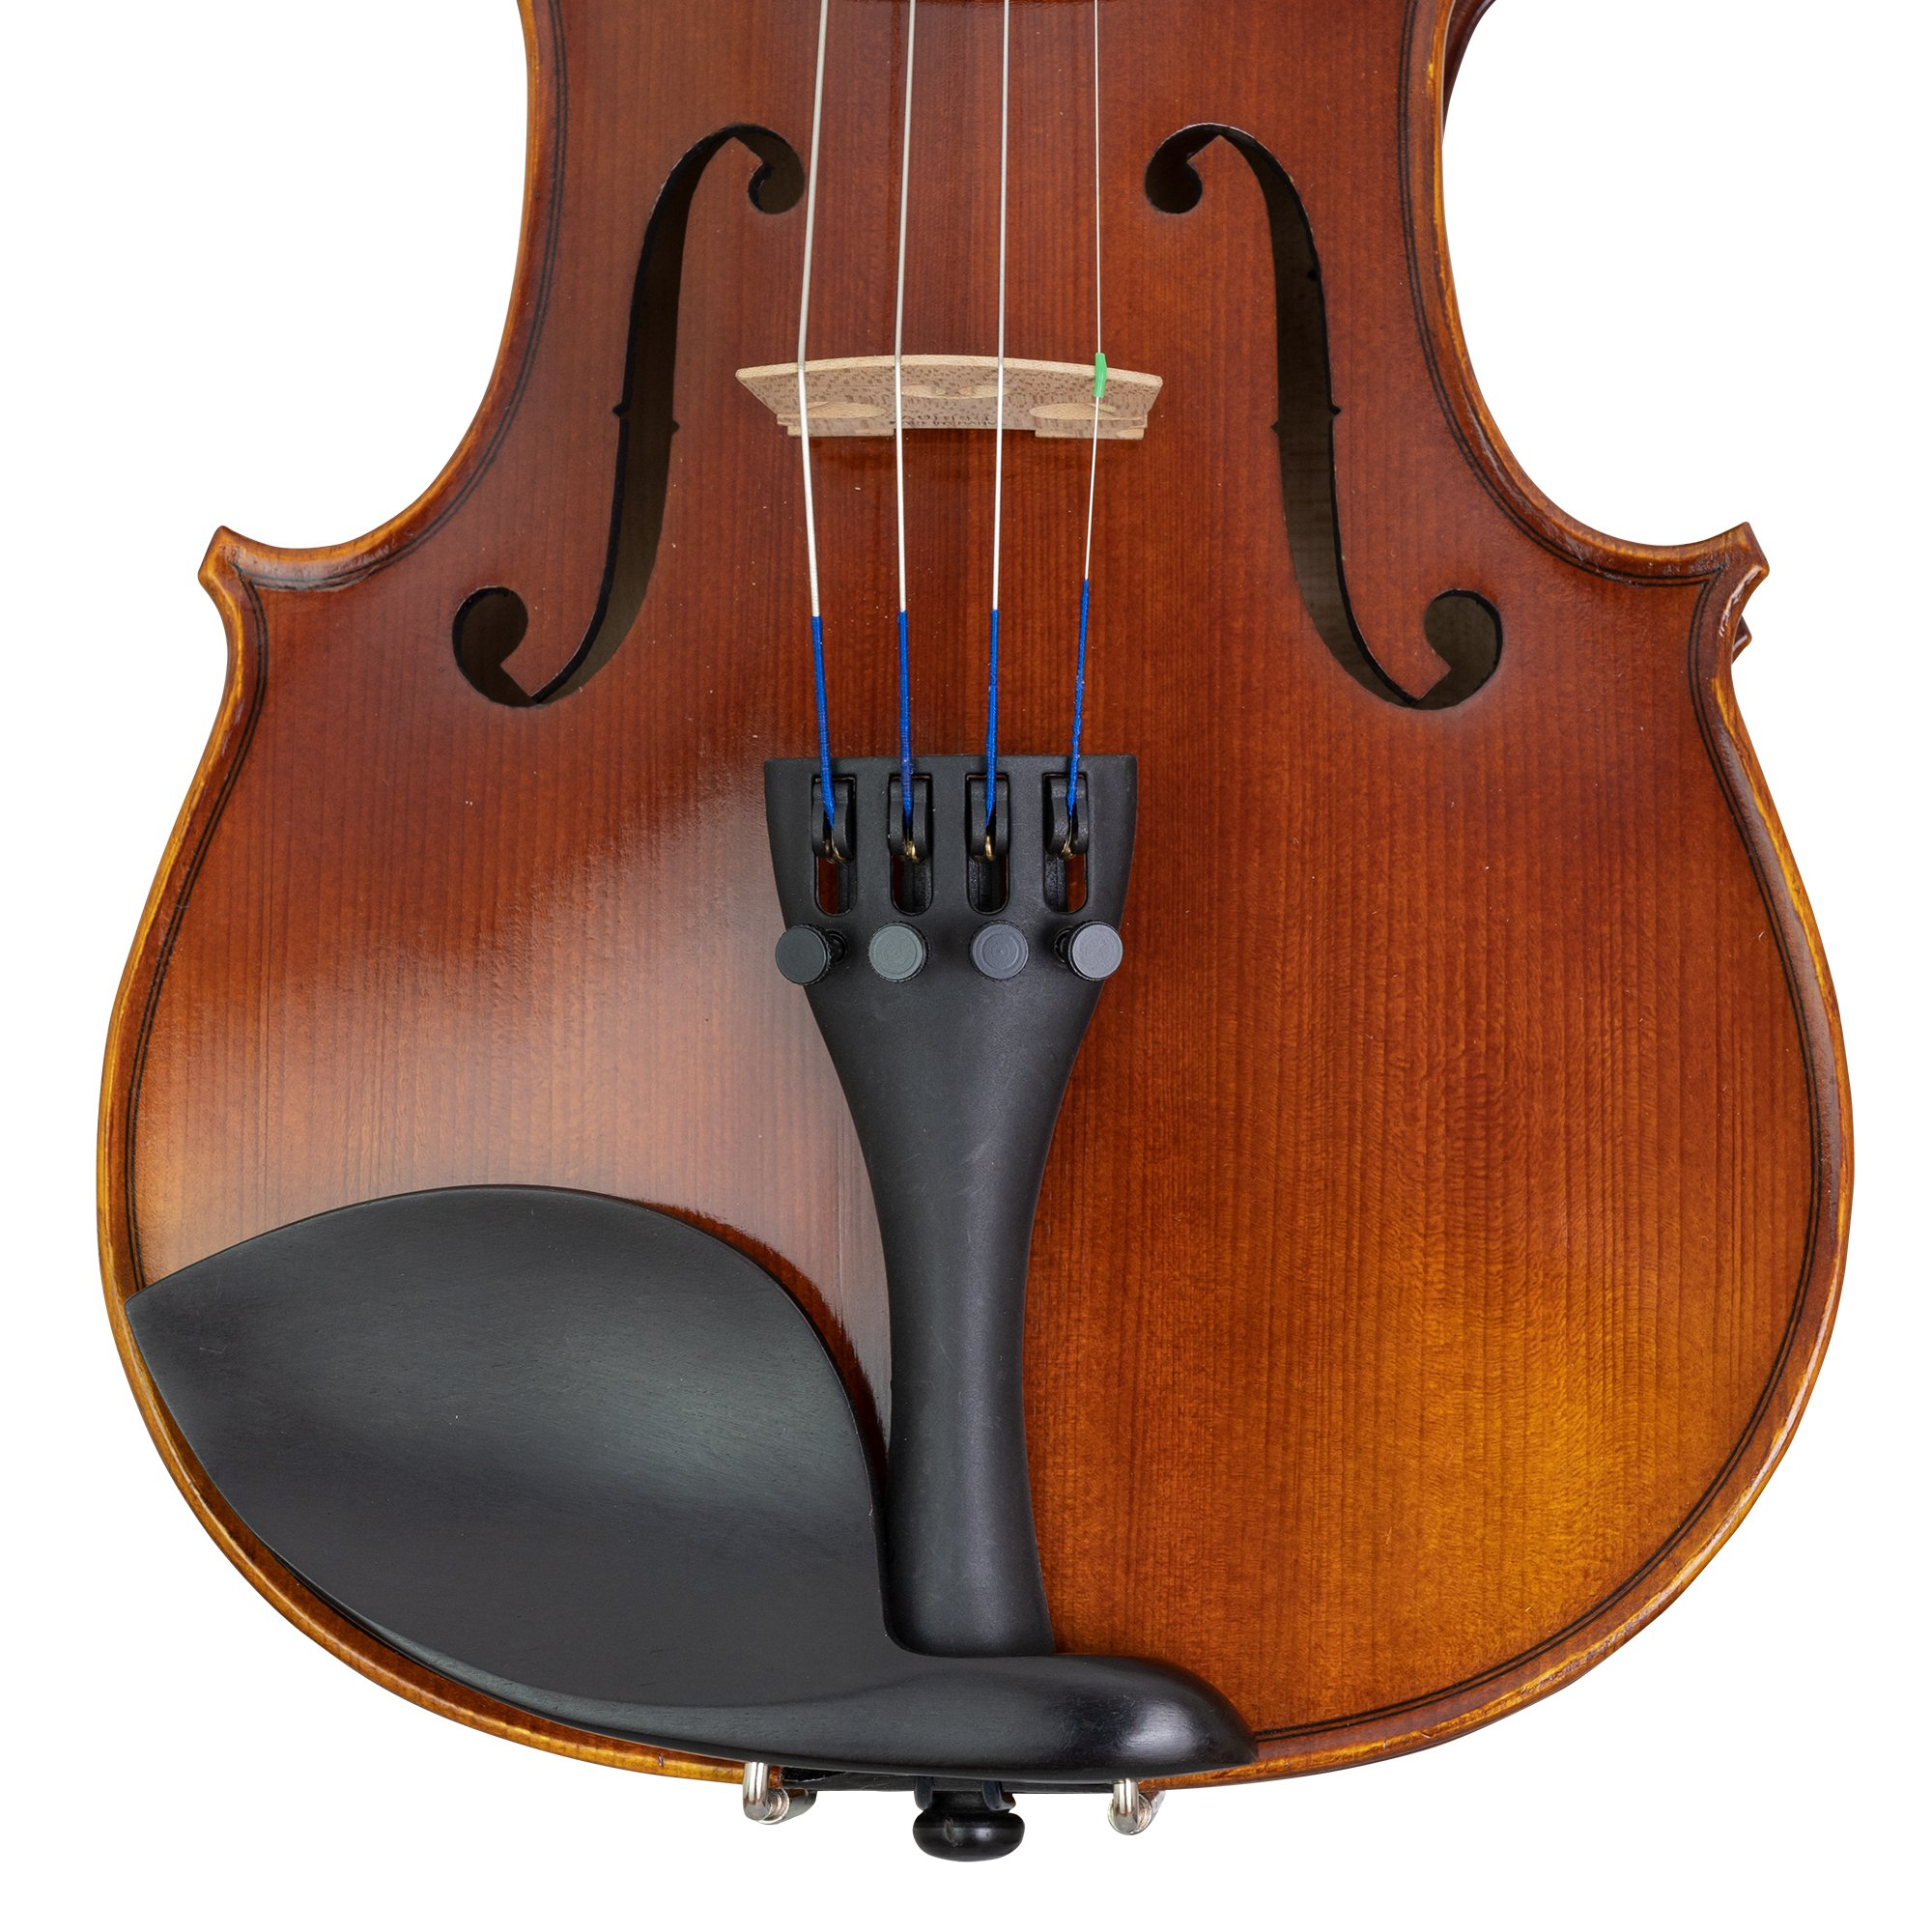 4/4 Louis Carpini G2 Violin Outfit in action